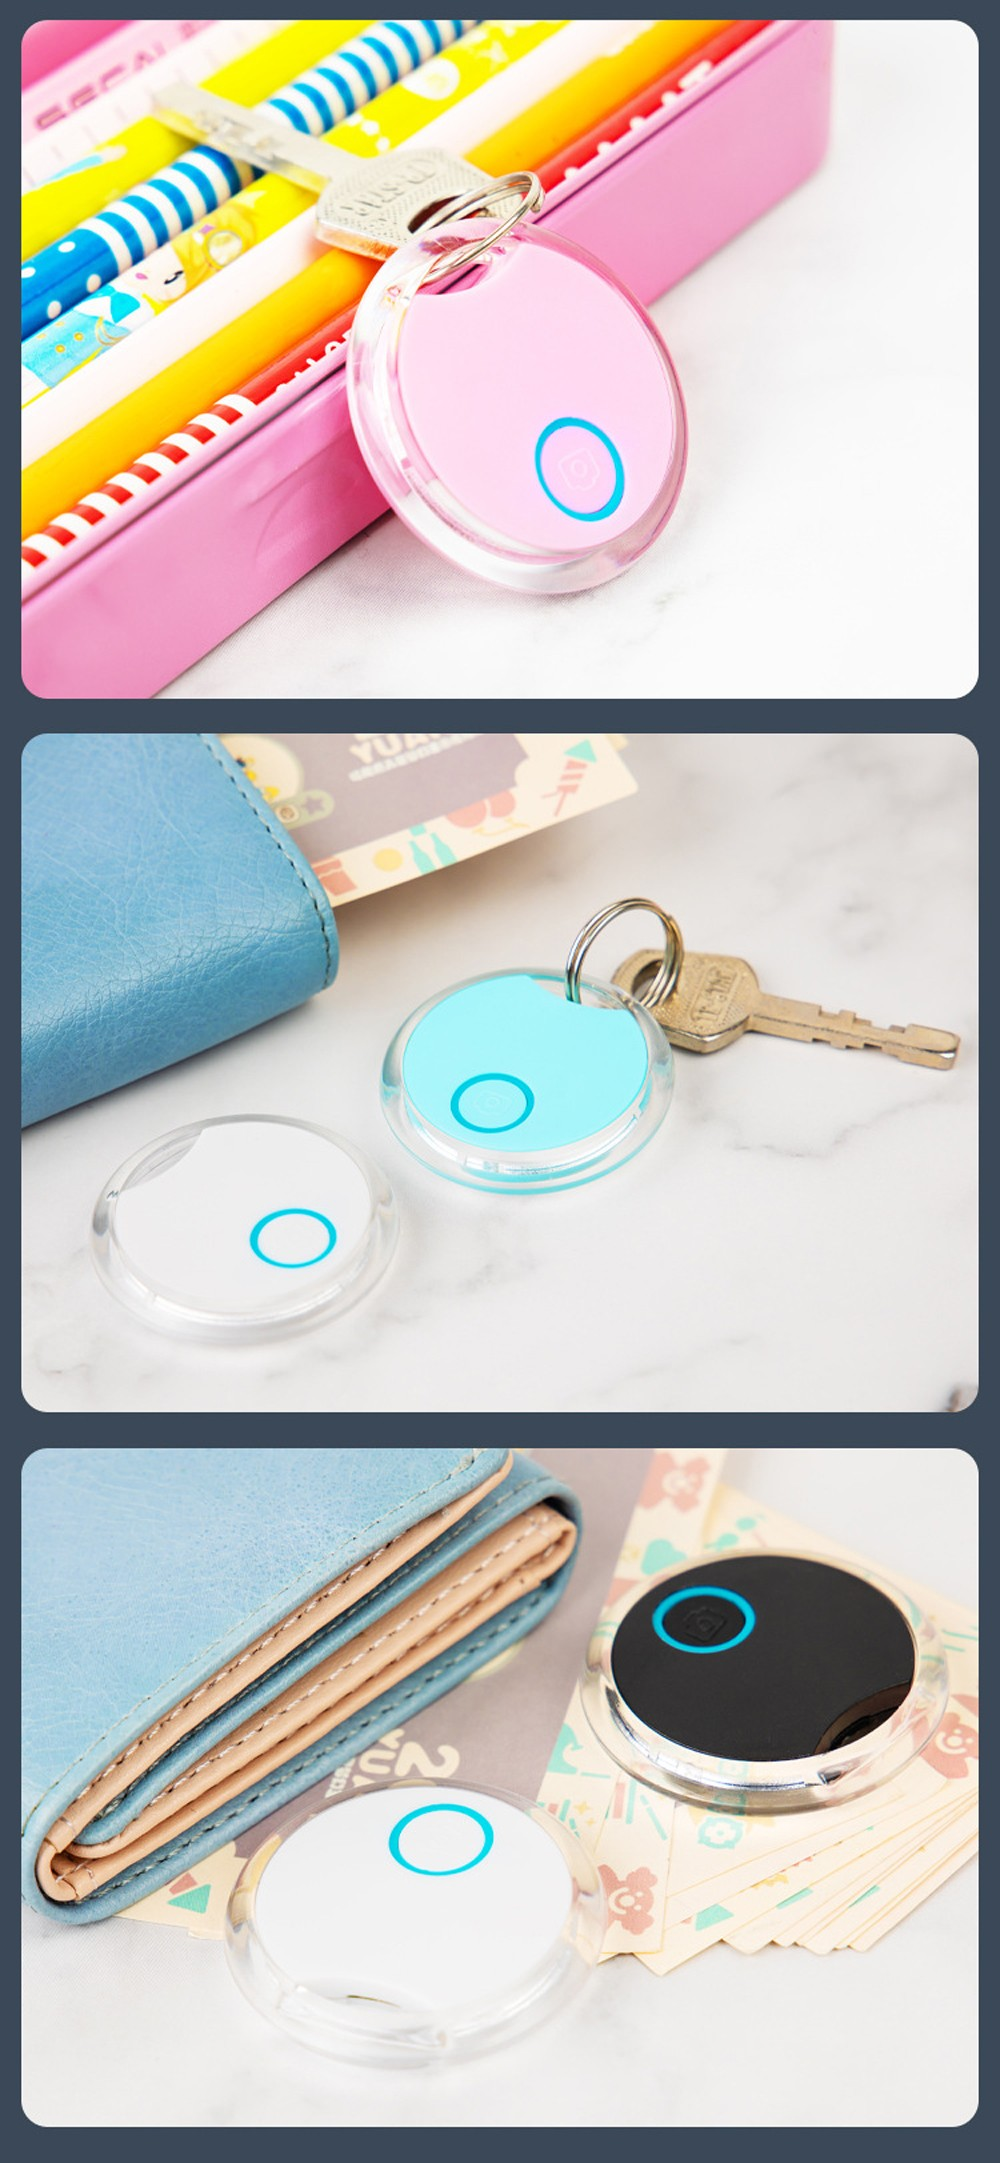 S8 Round Bluetooth Anti-lost Device Key Item Tracker Mobile Phone Finding Object Two-way Alarm Pet Anti-lost Alarm - Day Sky Blue